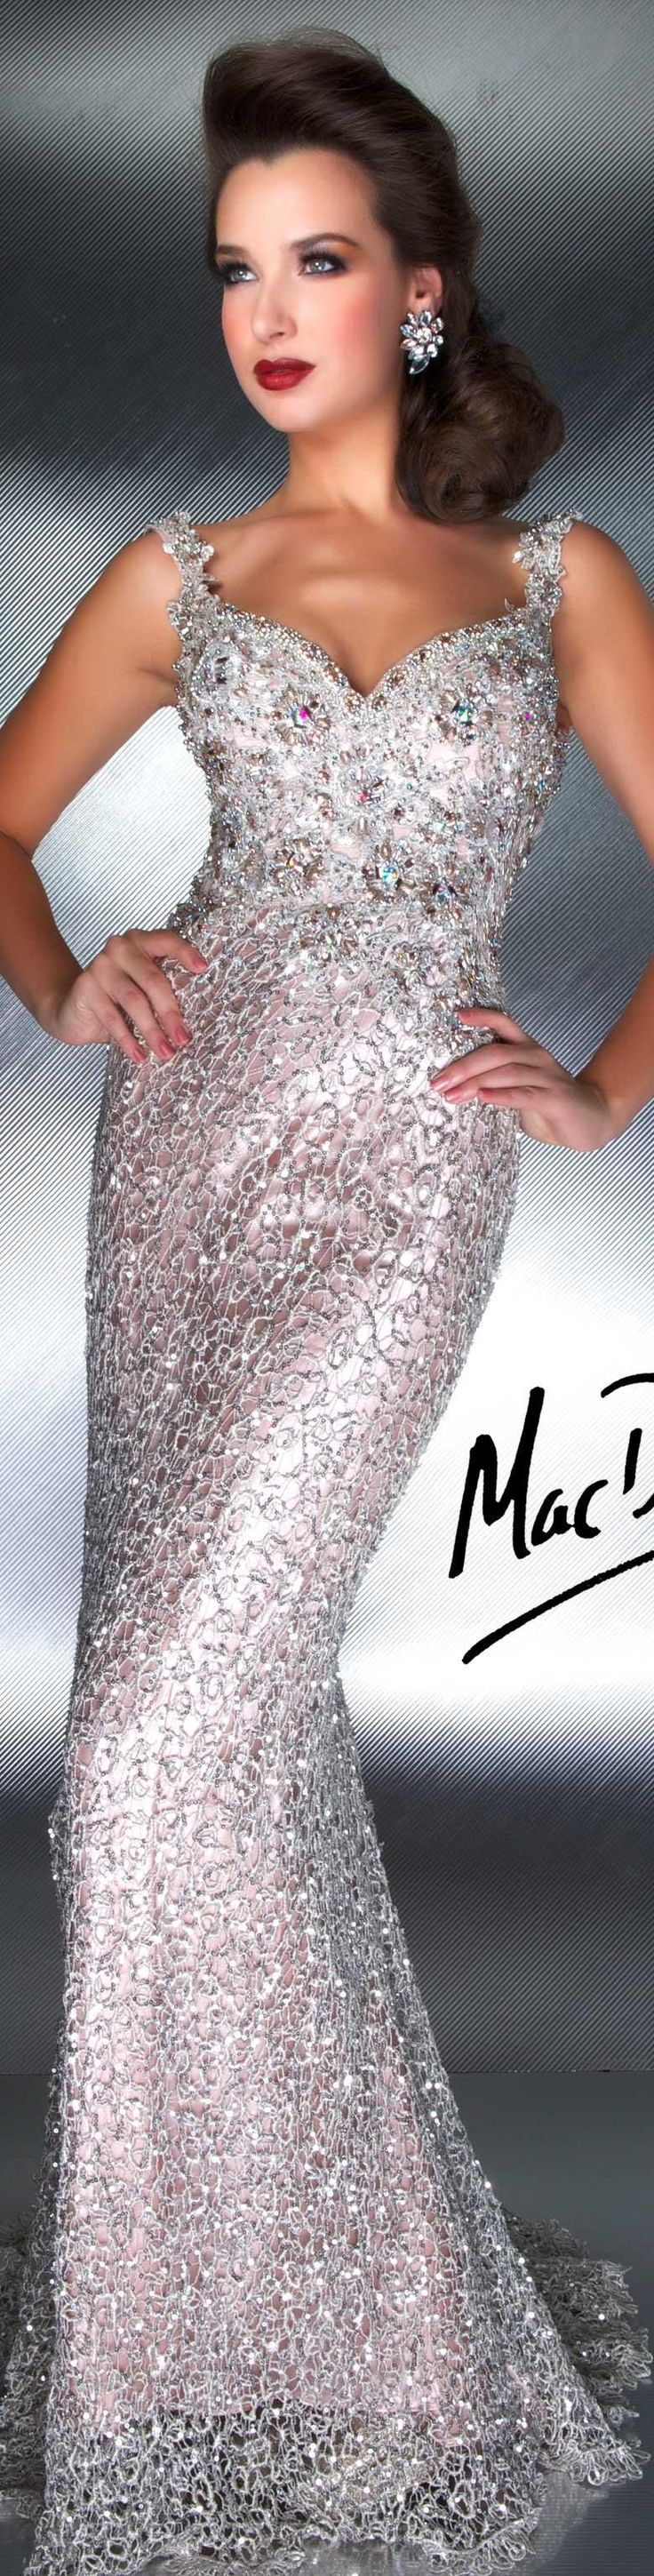 Mac Duggal couture - nude/silver dress. COUTURE DRESSES  STYLE 78709D  (better without implants, just sayin)